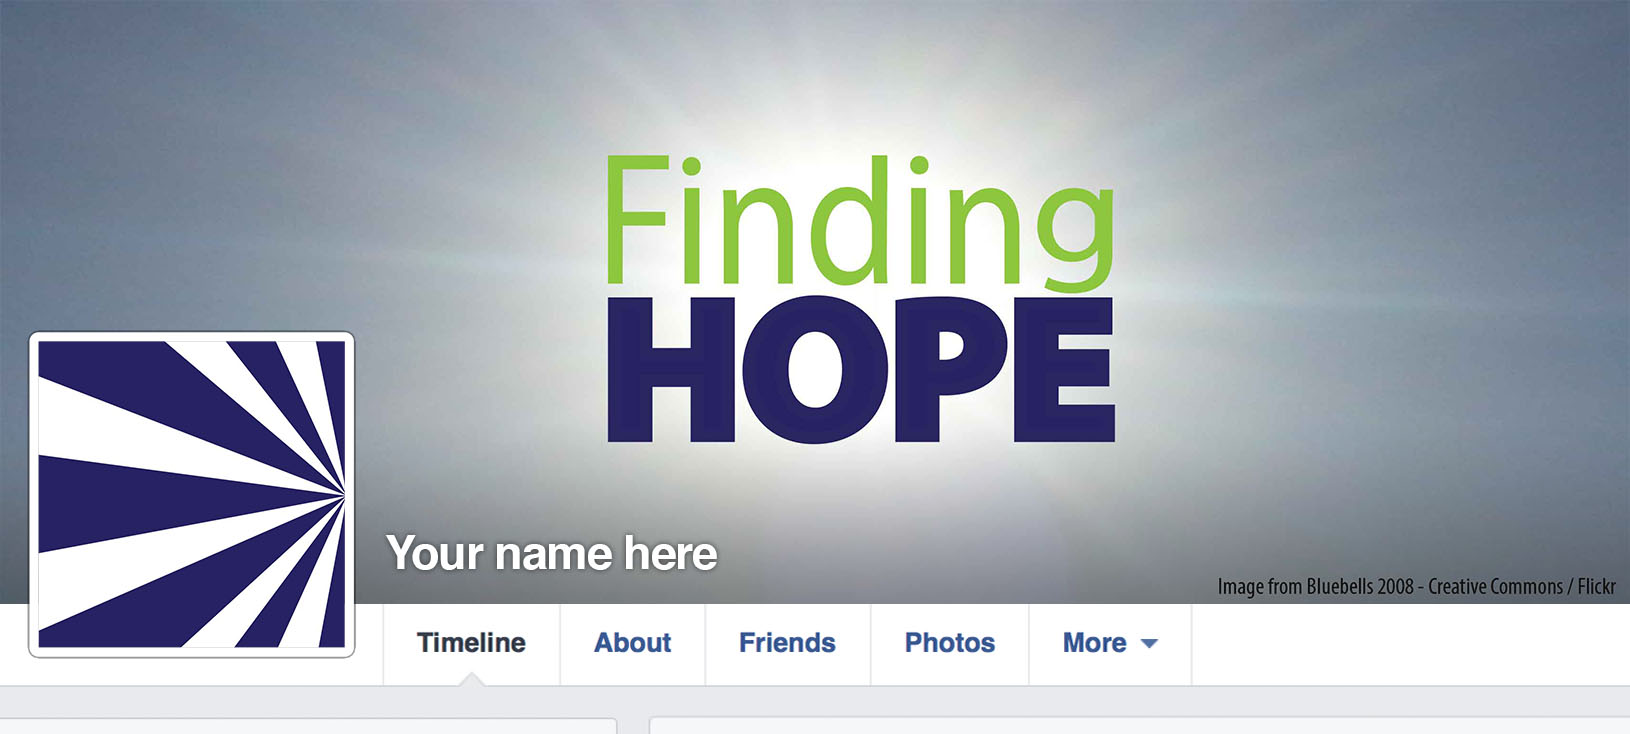 Finding Hope Facebook Layout